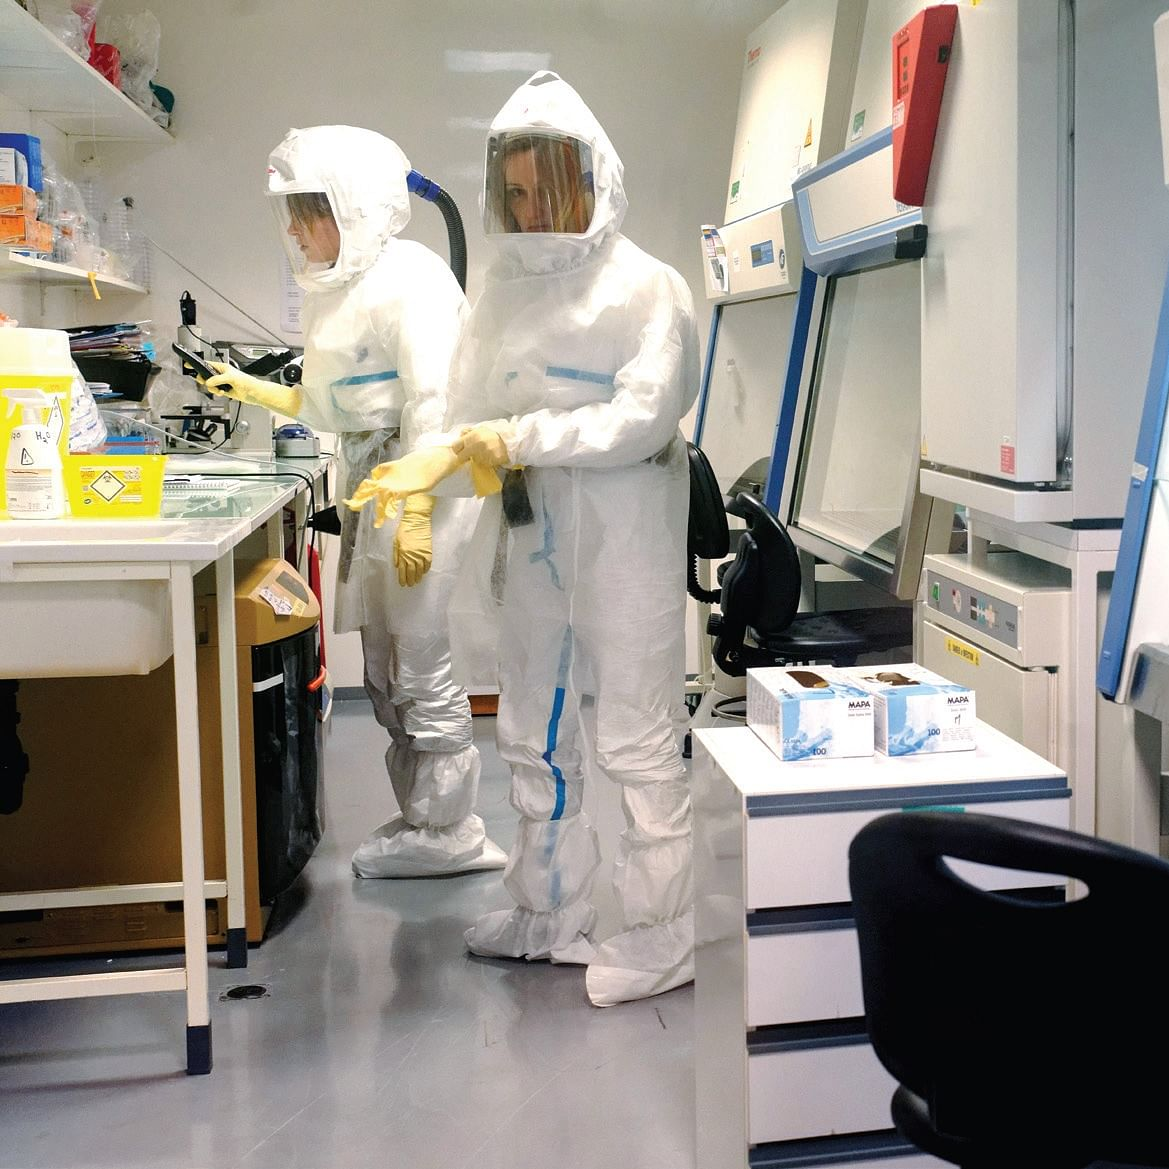 Researchers working on a COVID-19 vaccine